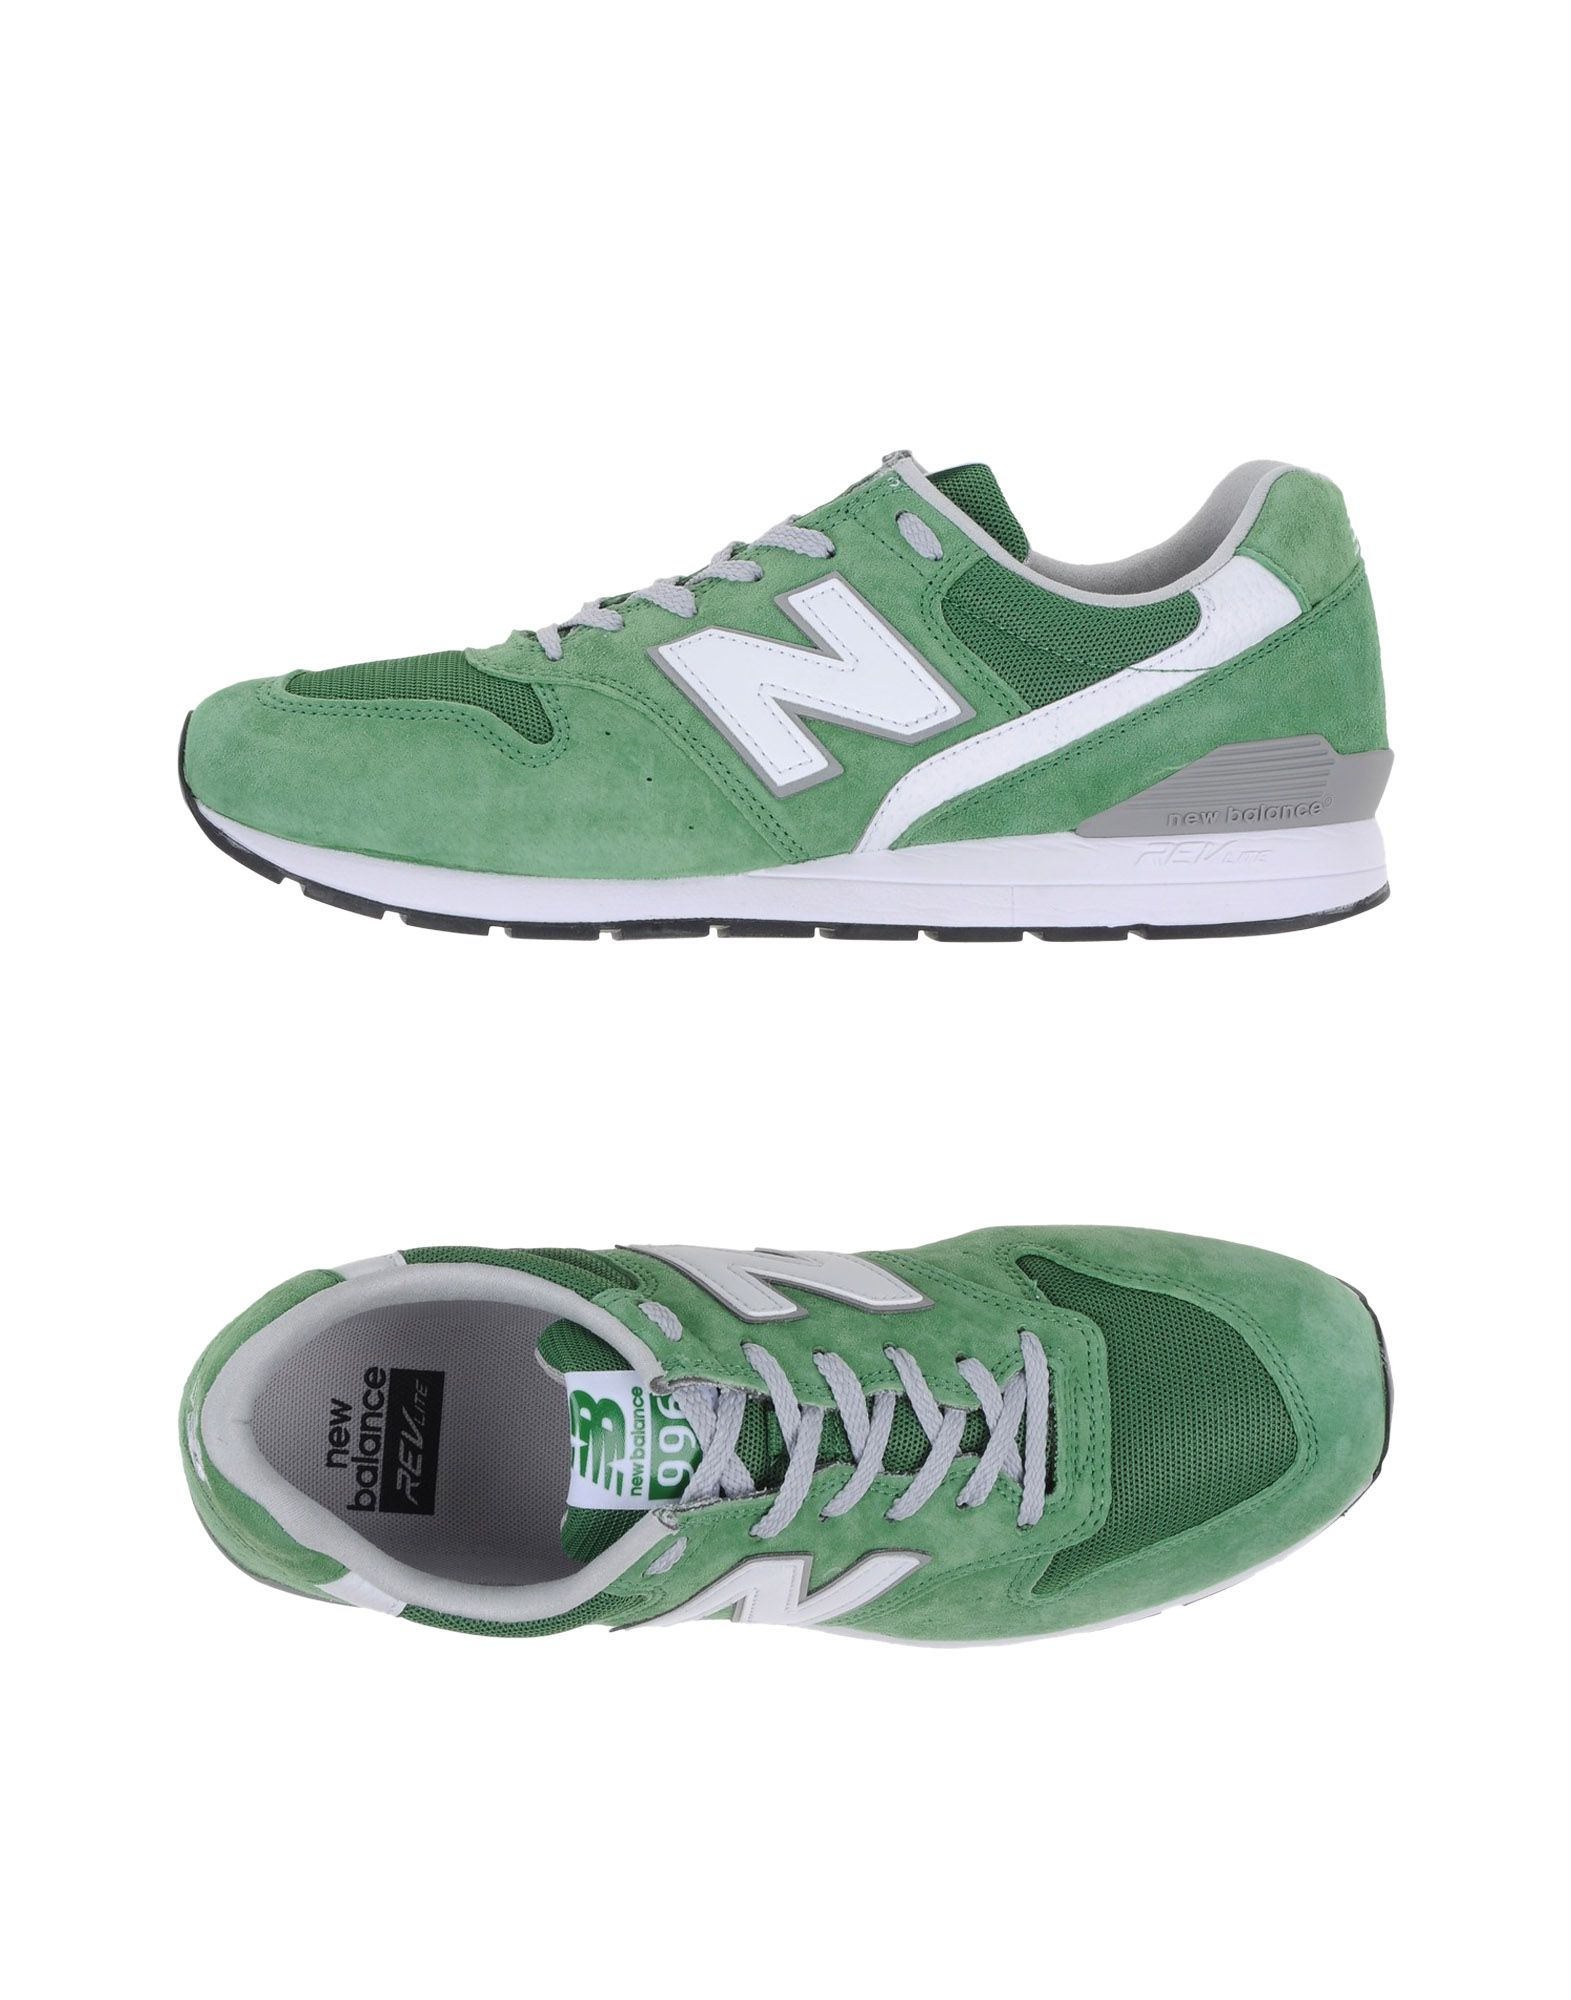 Sneakers New Balance 996 Mesh - Homme - Sneakers New Balance sur